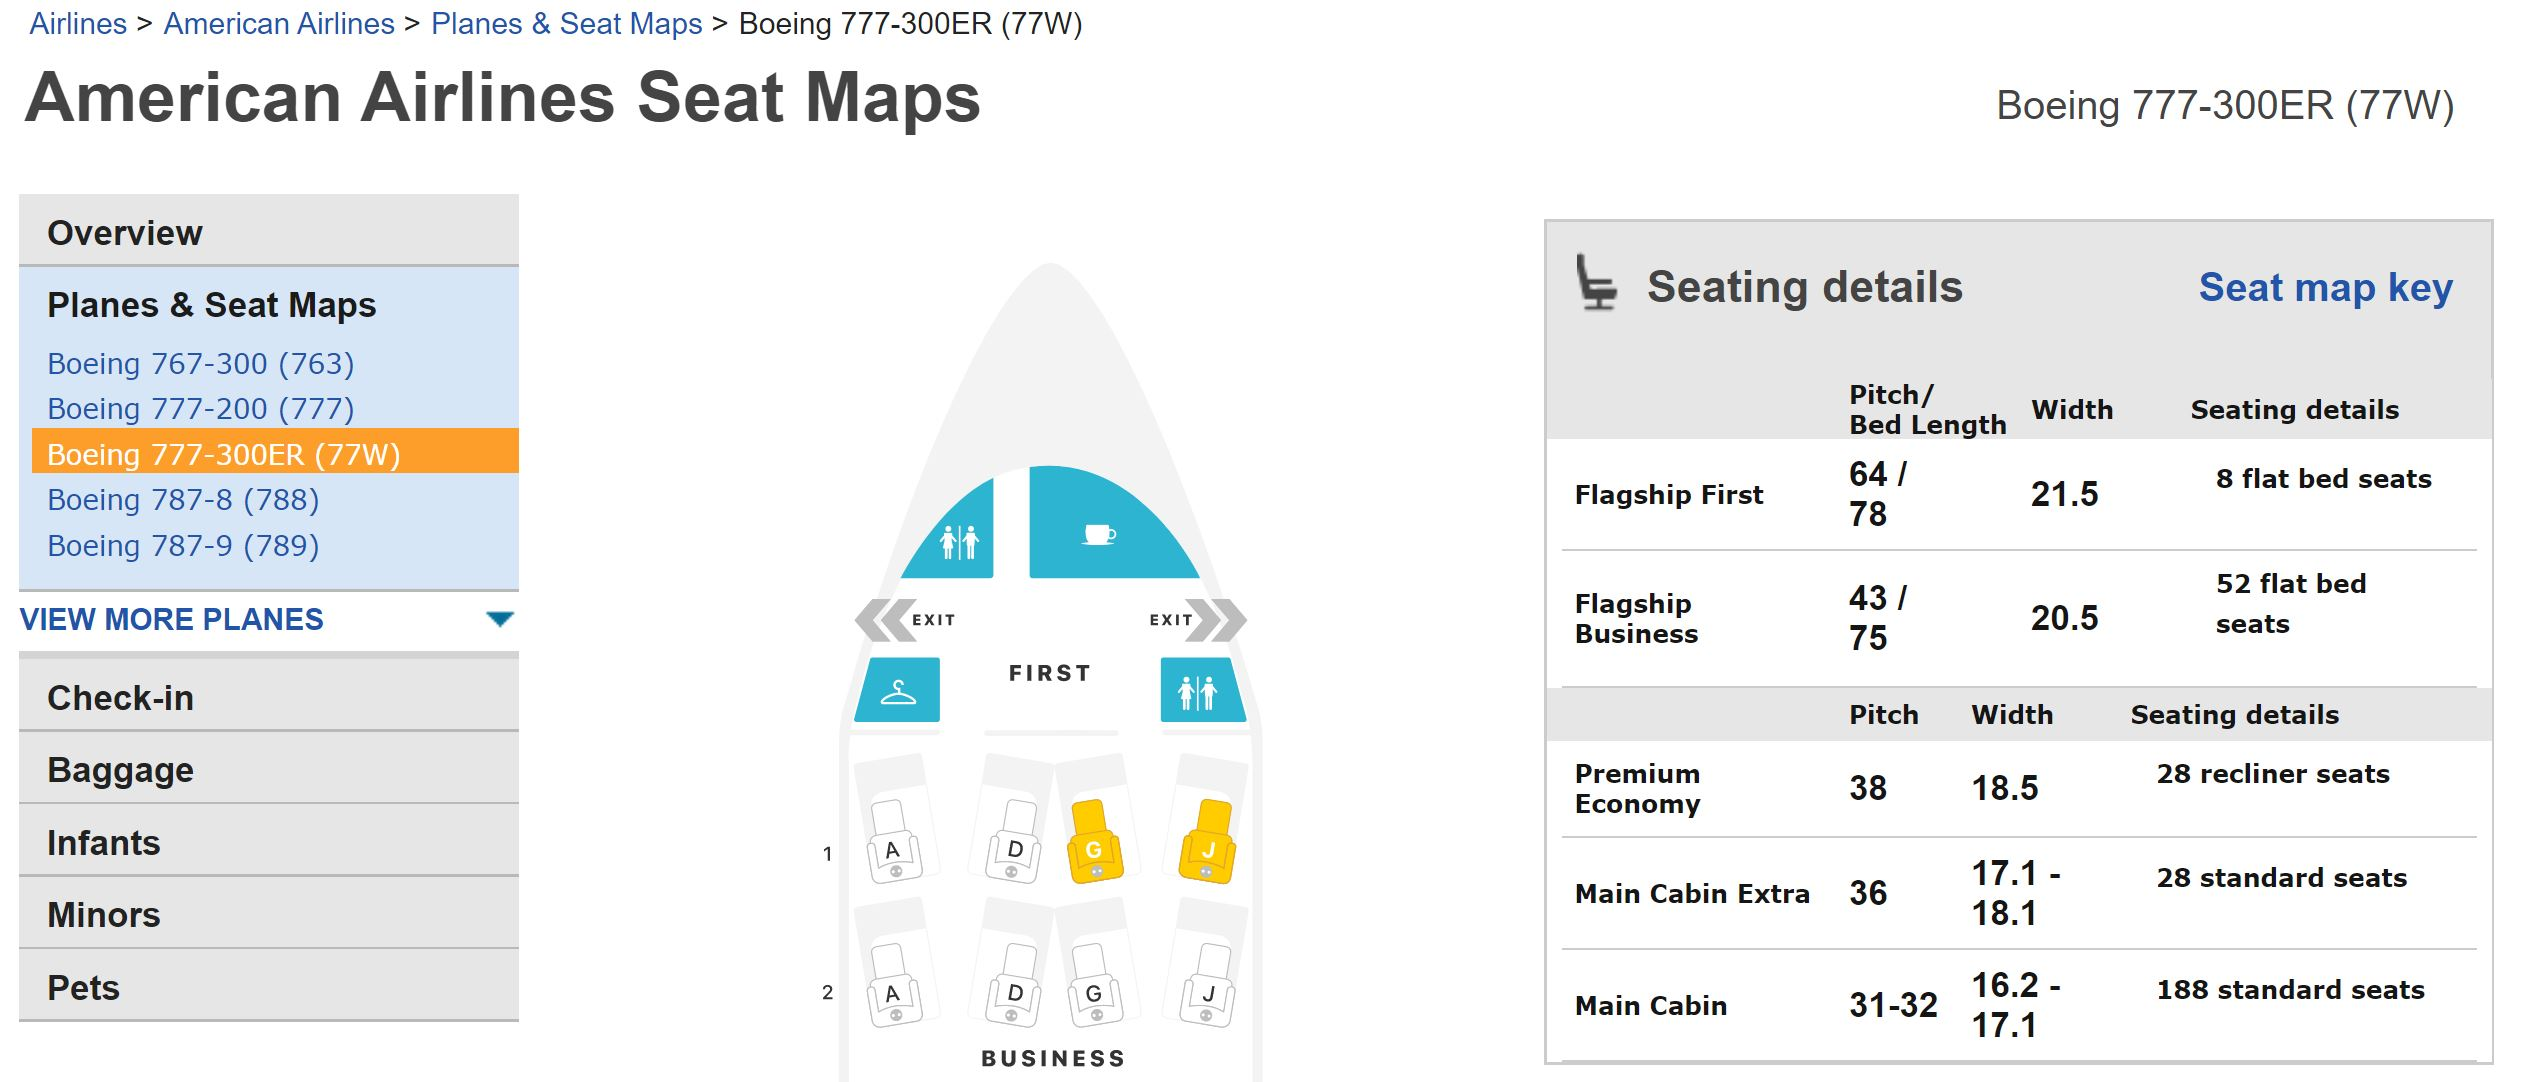 SeatGuru - How To Find the Best Seat on the Plane [2019] on gulf air seat map, iberia airlines seat map, lan airlines seat map, south african airlines seat map, spirit airplane layout, 747-400 seat map, croatia airlines seat map, spirit seating-chart, aircraft seat map, porter airlines seat map, united airlines seat map, spirit a319 seating, spirit airline best seats, aerolineas argentinas seat map, spirit air seats, spirit airbus a320-100 200, united airlines plane seating map, spirit airline seat charts a319, copa airlines seat map, shanghai airlines seat map,